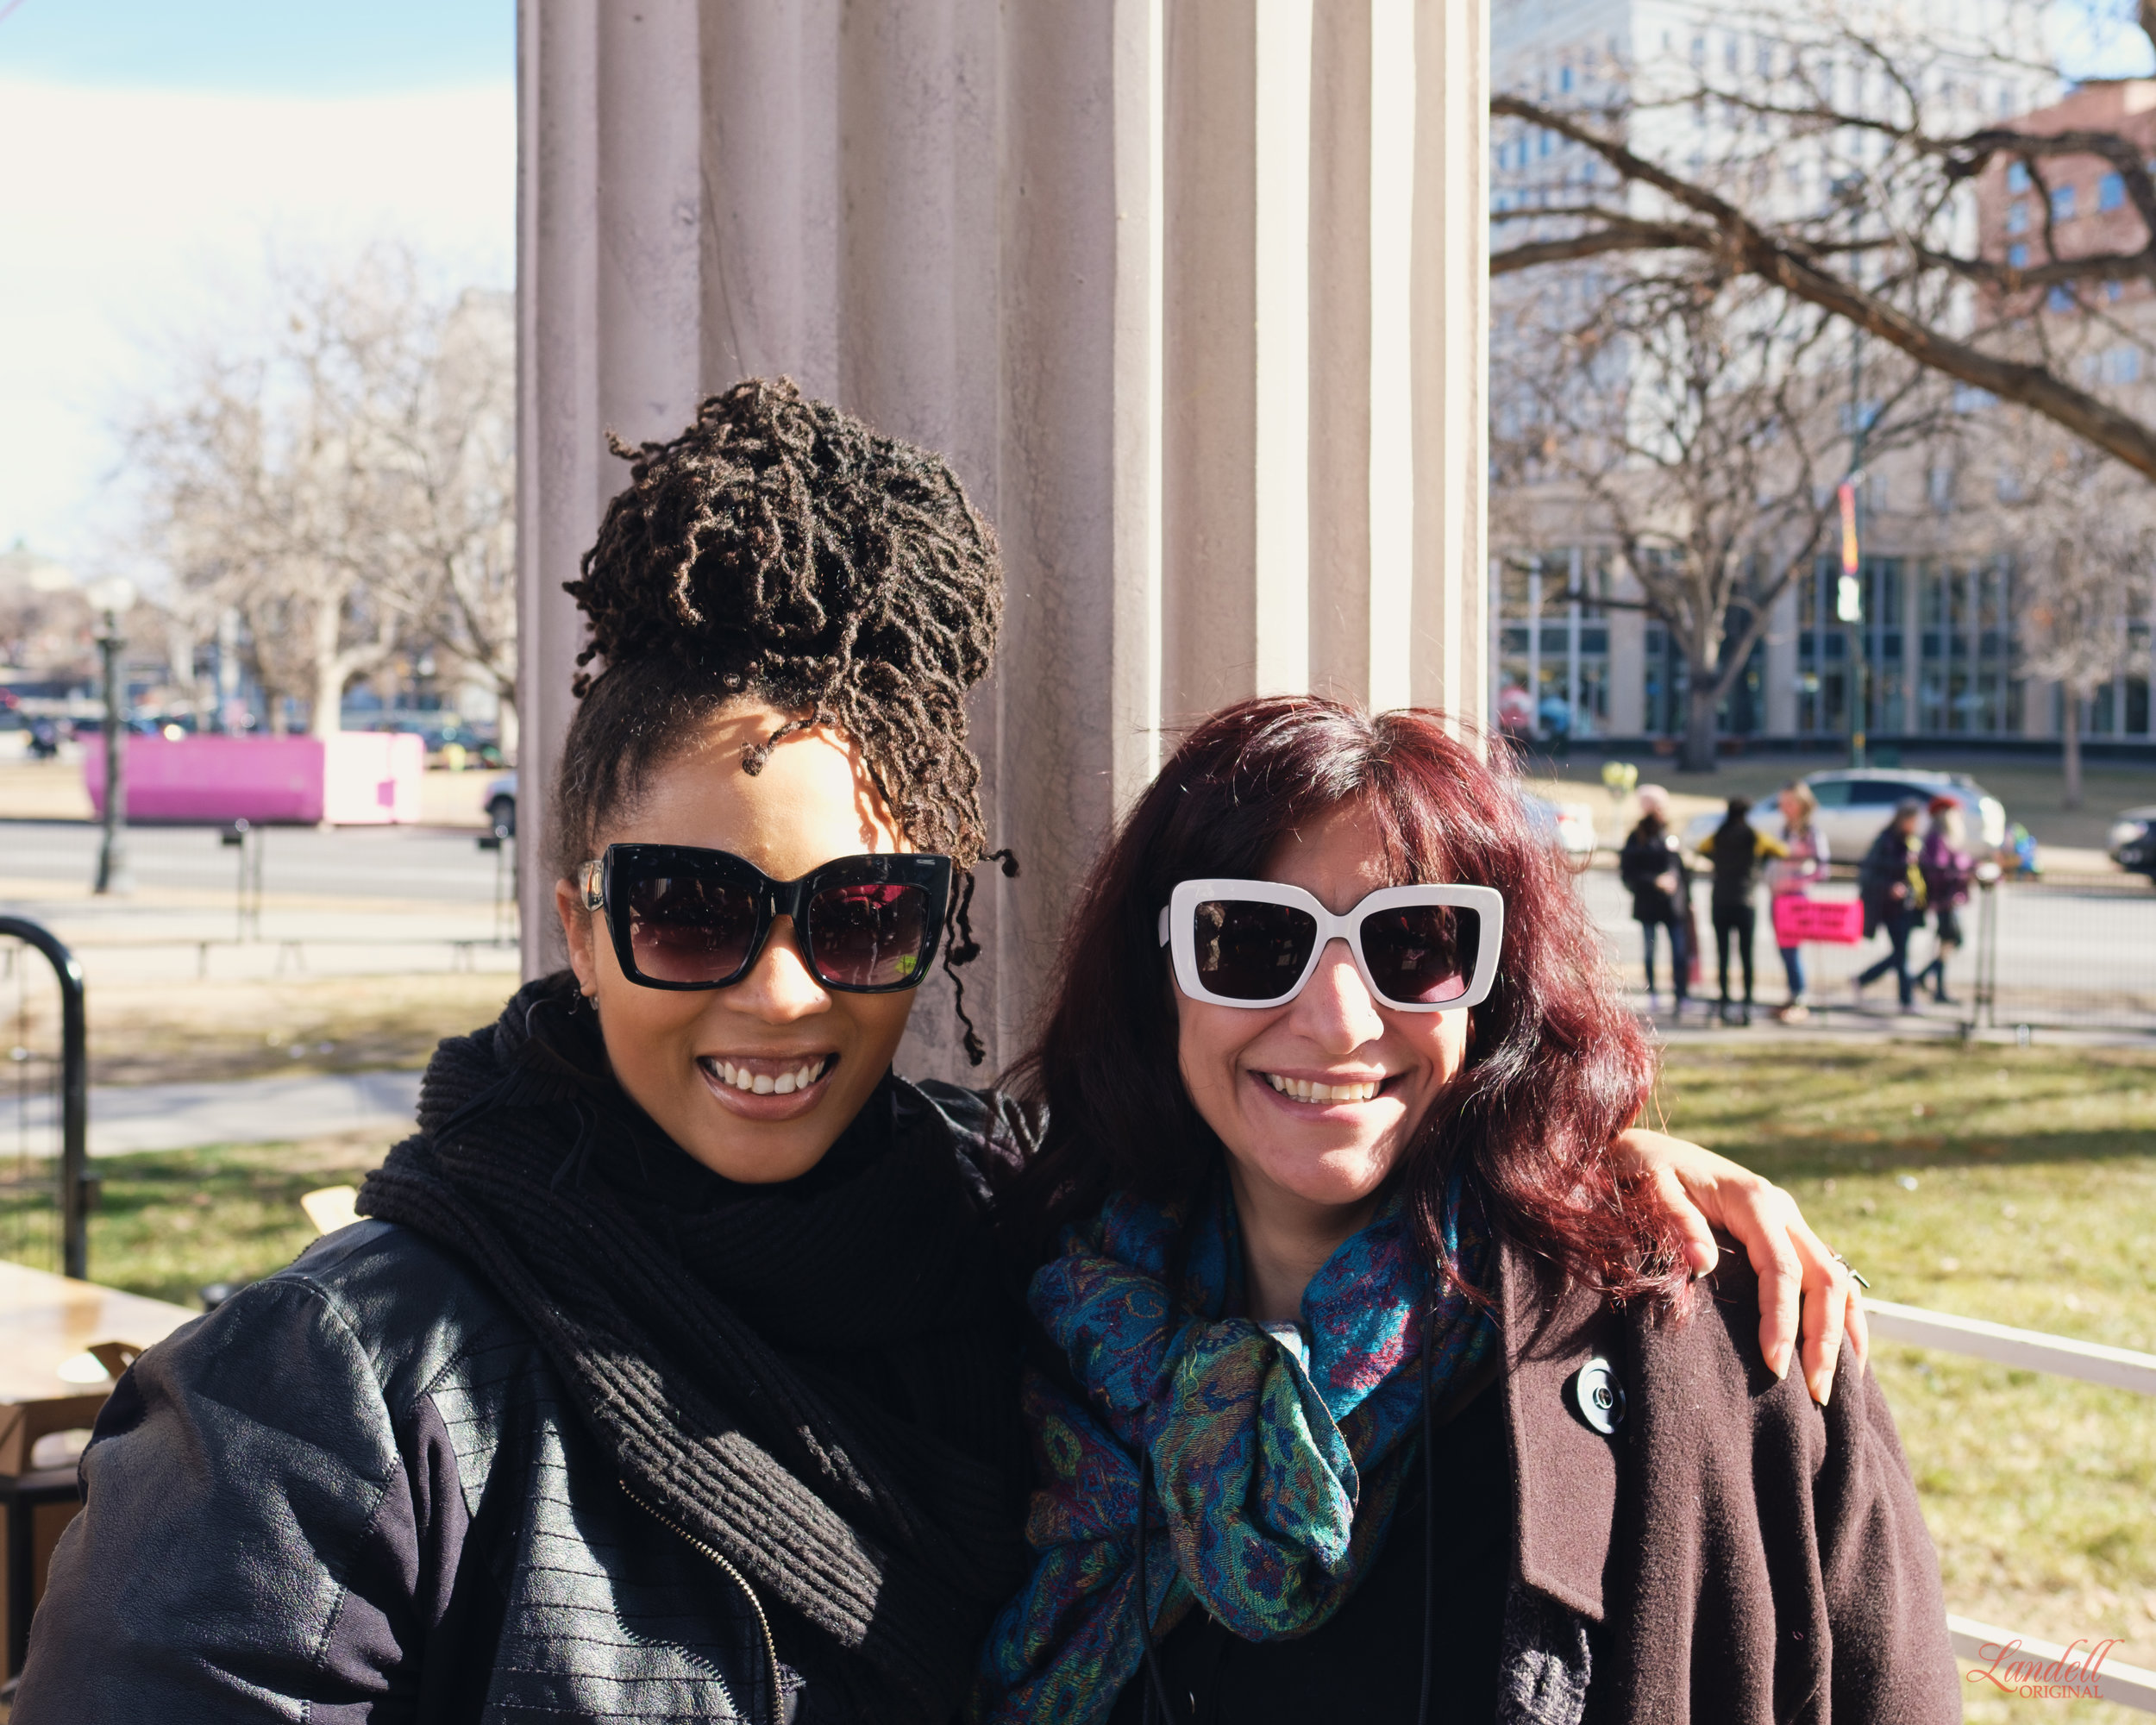 DENVER_WOMENS_MARCH-2018_01-20-2018_0132.jpg